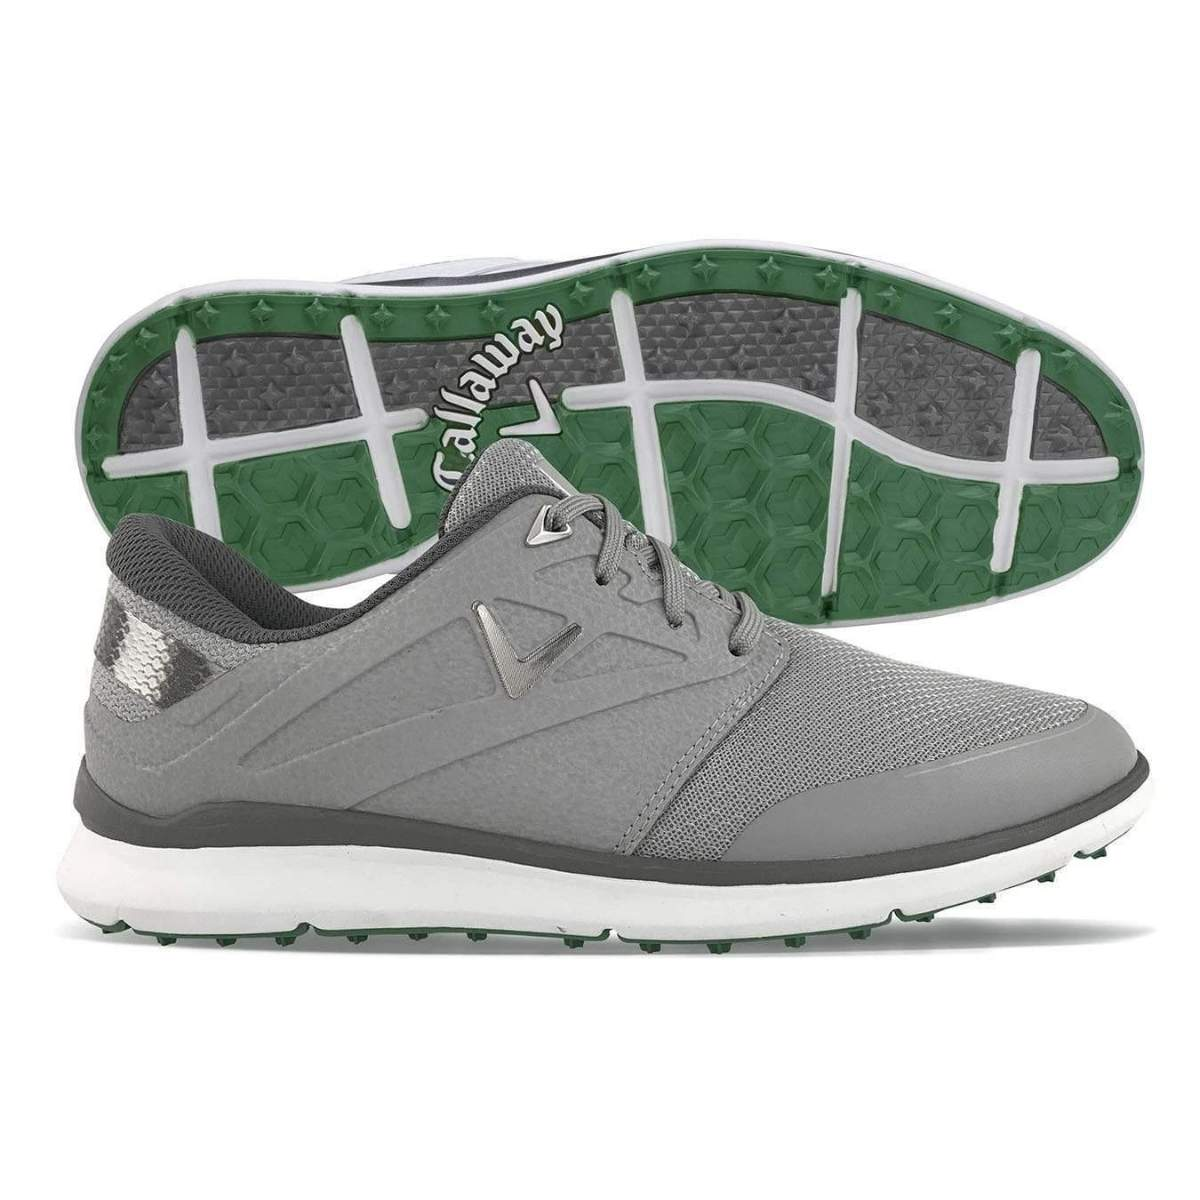 Callaway Men's Oceanside Grey Golf Shoes